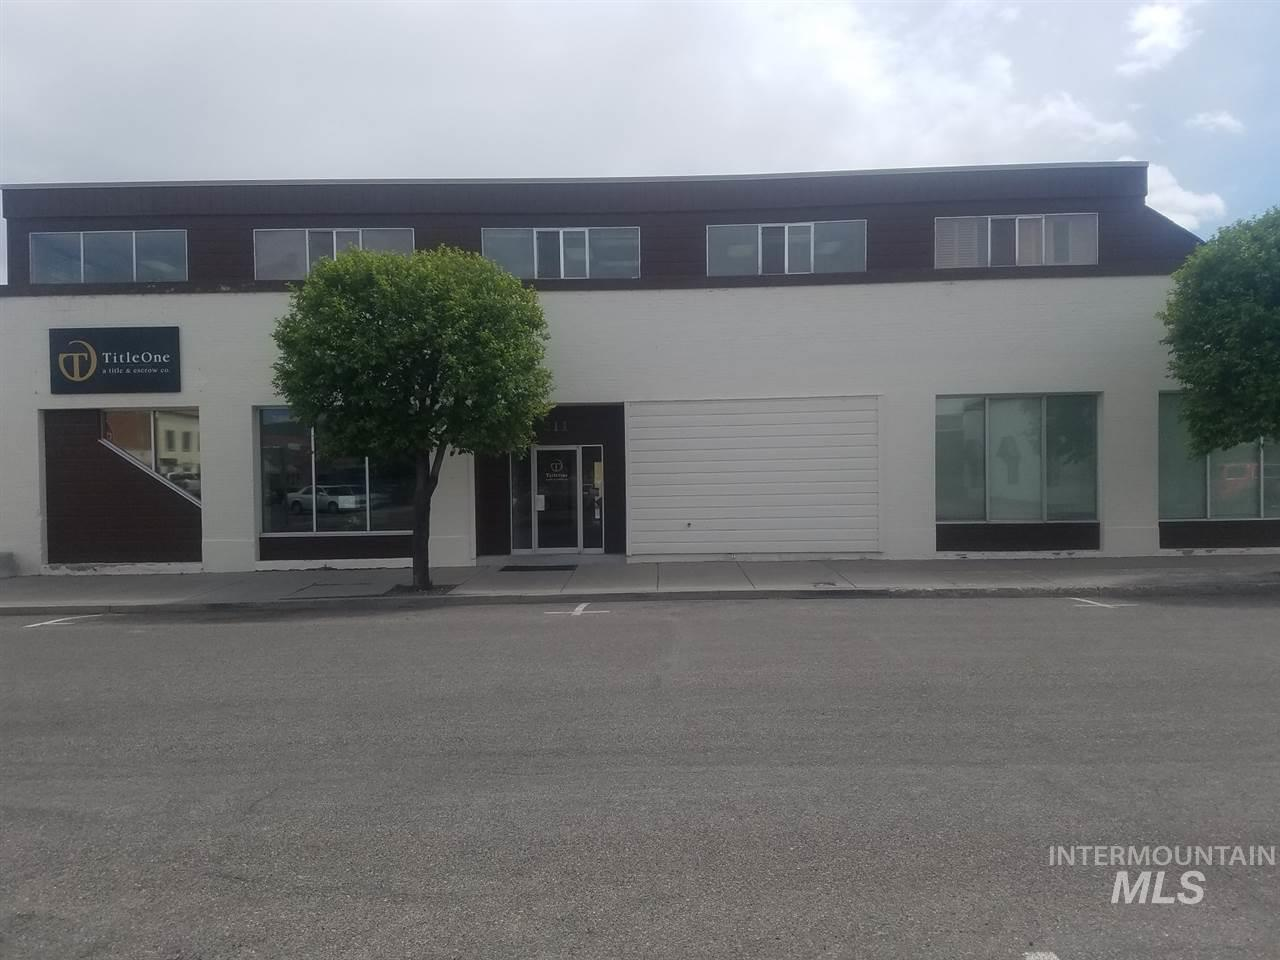 211 W 13th Street, Burley, Idaho 83318, Business/Commercial For Sale, Price $589,000, 98729137